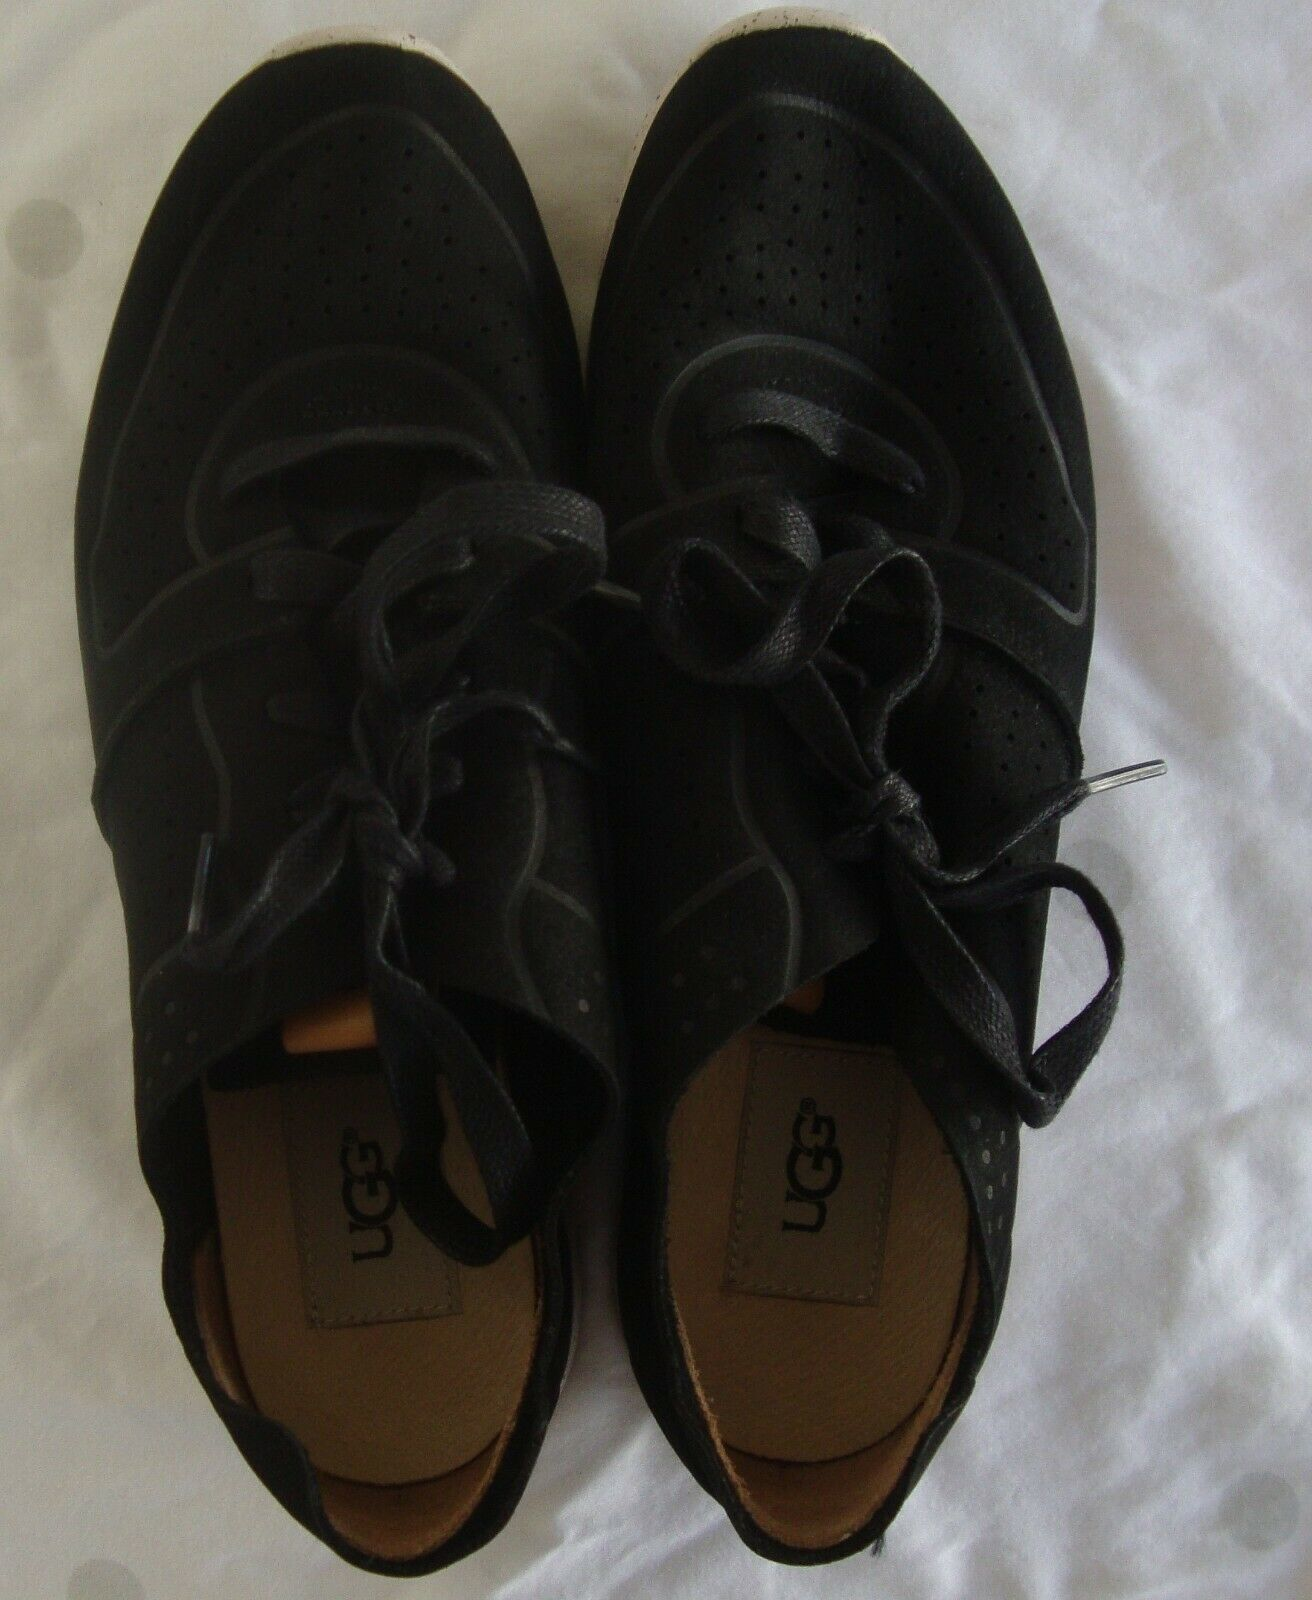 UGG Treadlite Size 9 Black Leather Lace up Sneakers Shoes Womens Style # 1016674